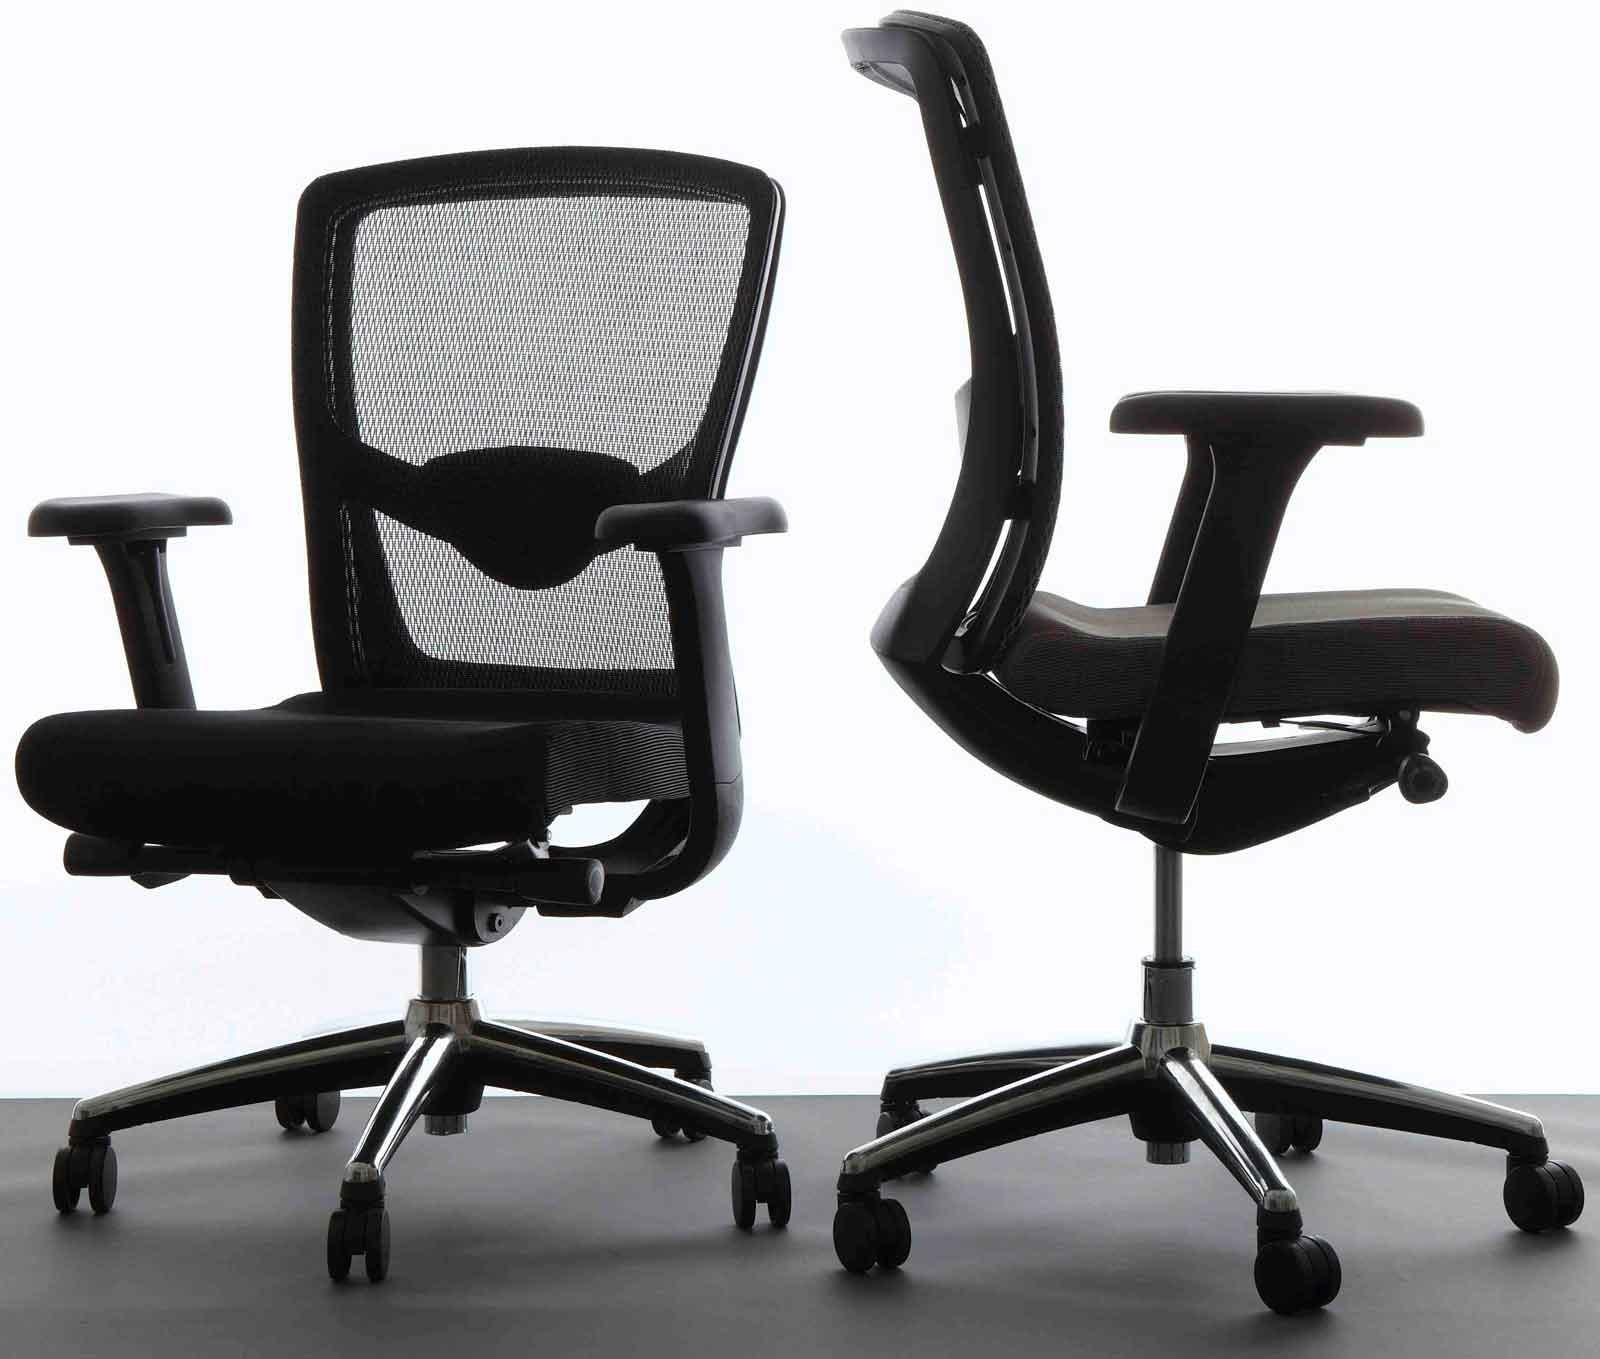 Ergonomic Computer Desk Chairs Office Furniture